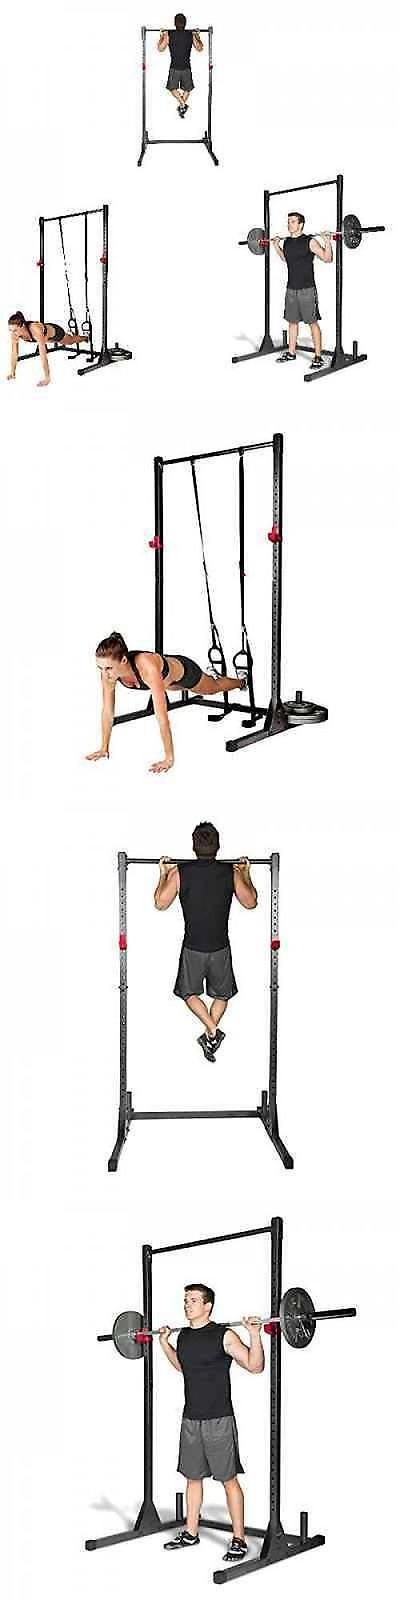 Pull Up Bars 179816: Home Gym Pull Up Bar Power Rack Exercise Stand Body Building Workout Fitness New -> BUY IT NOW ONLY: $130.86 on eBay!